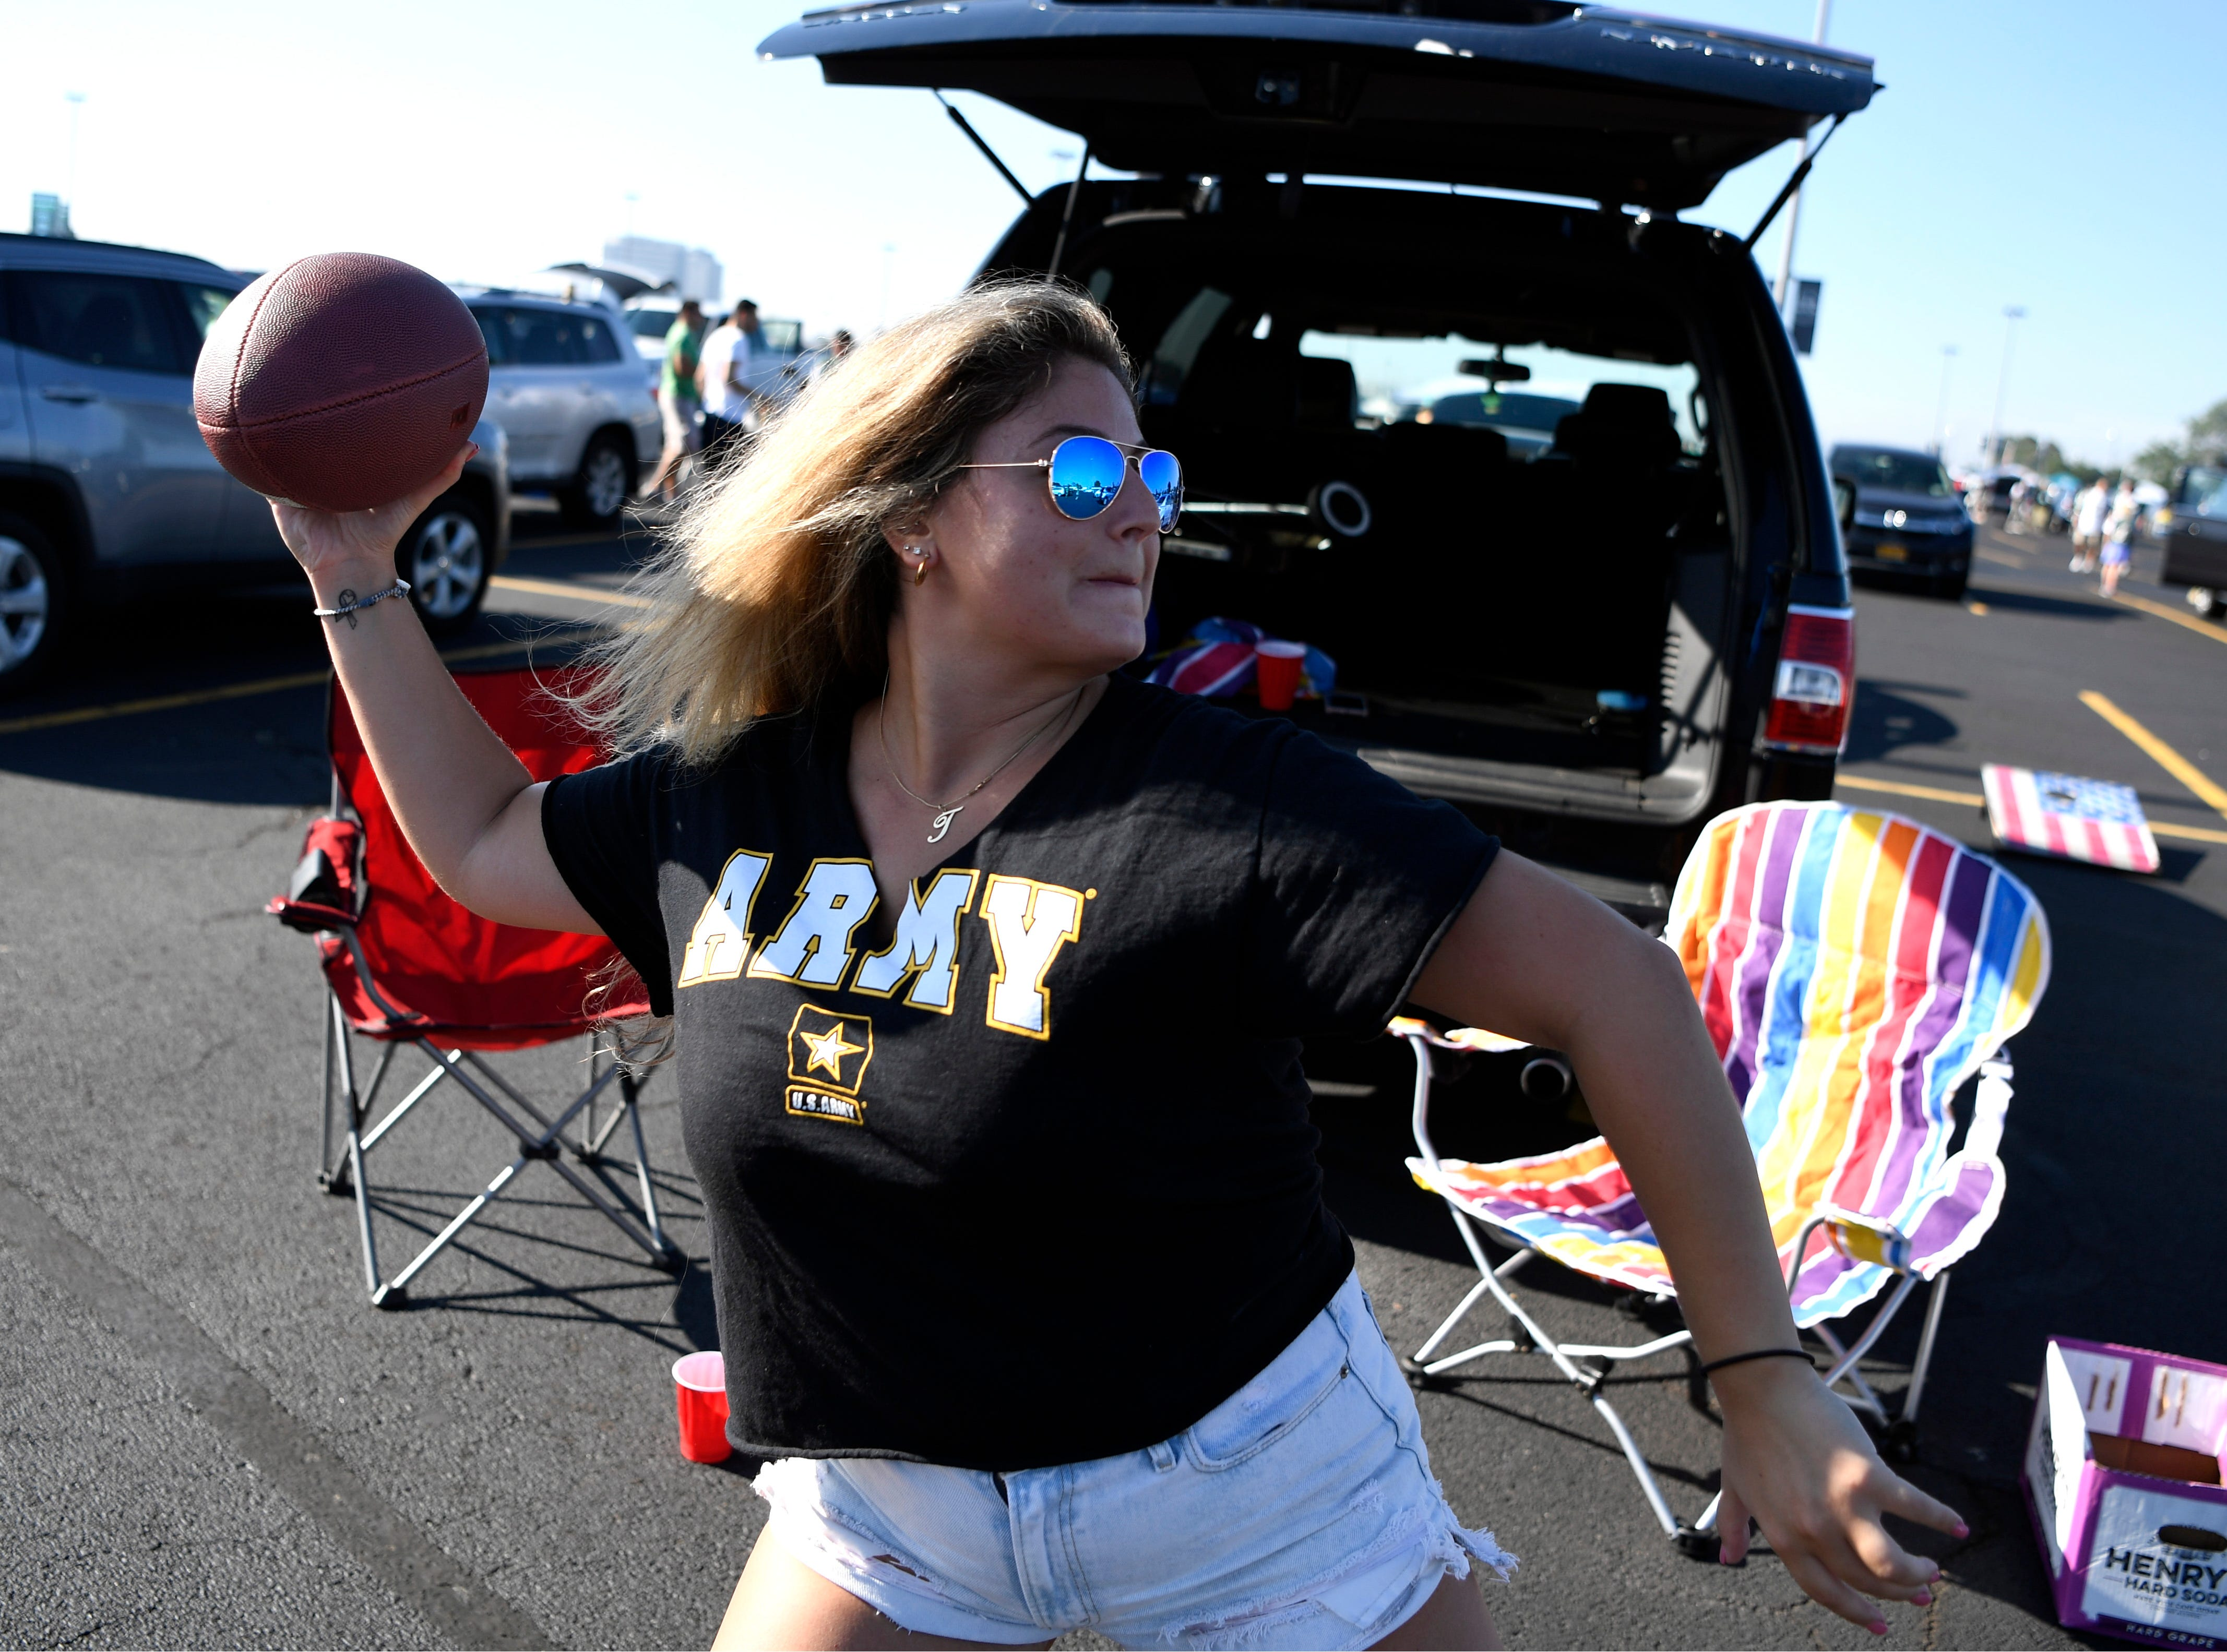 Taylor Boffalo of Paramus throws the football to friends during the tailgate before the New York Jets face the Miami Dolphins in Week 2 at MetLife Stadium in East Rutherford, NJ on Sunday, September 16, 2018.